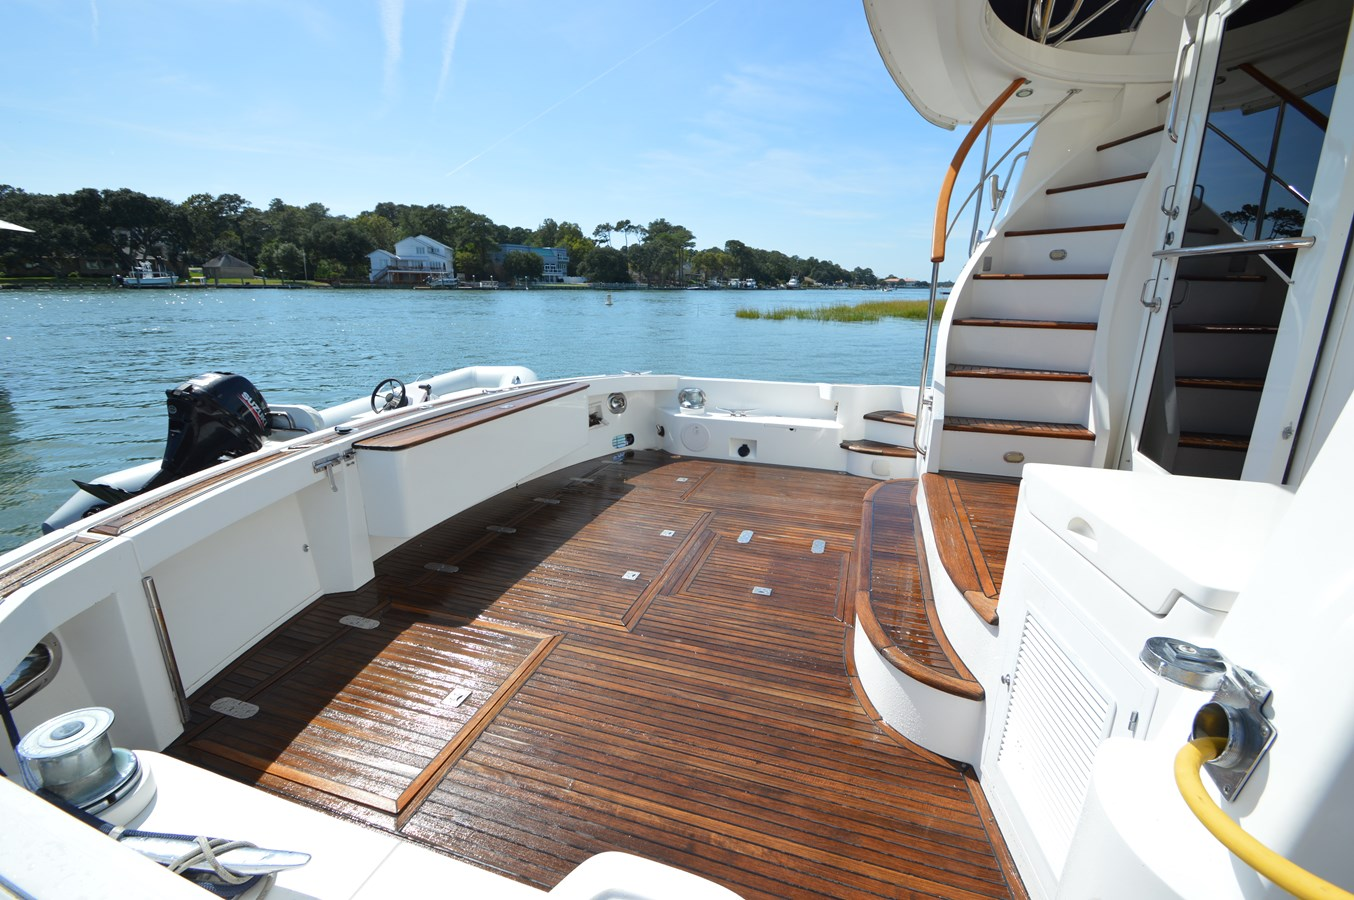 23 - 58 GRAND BANKS For Sale